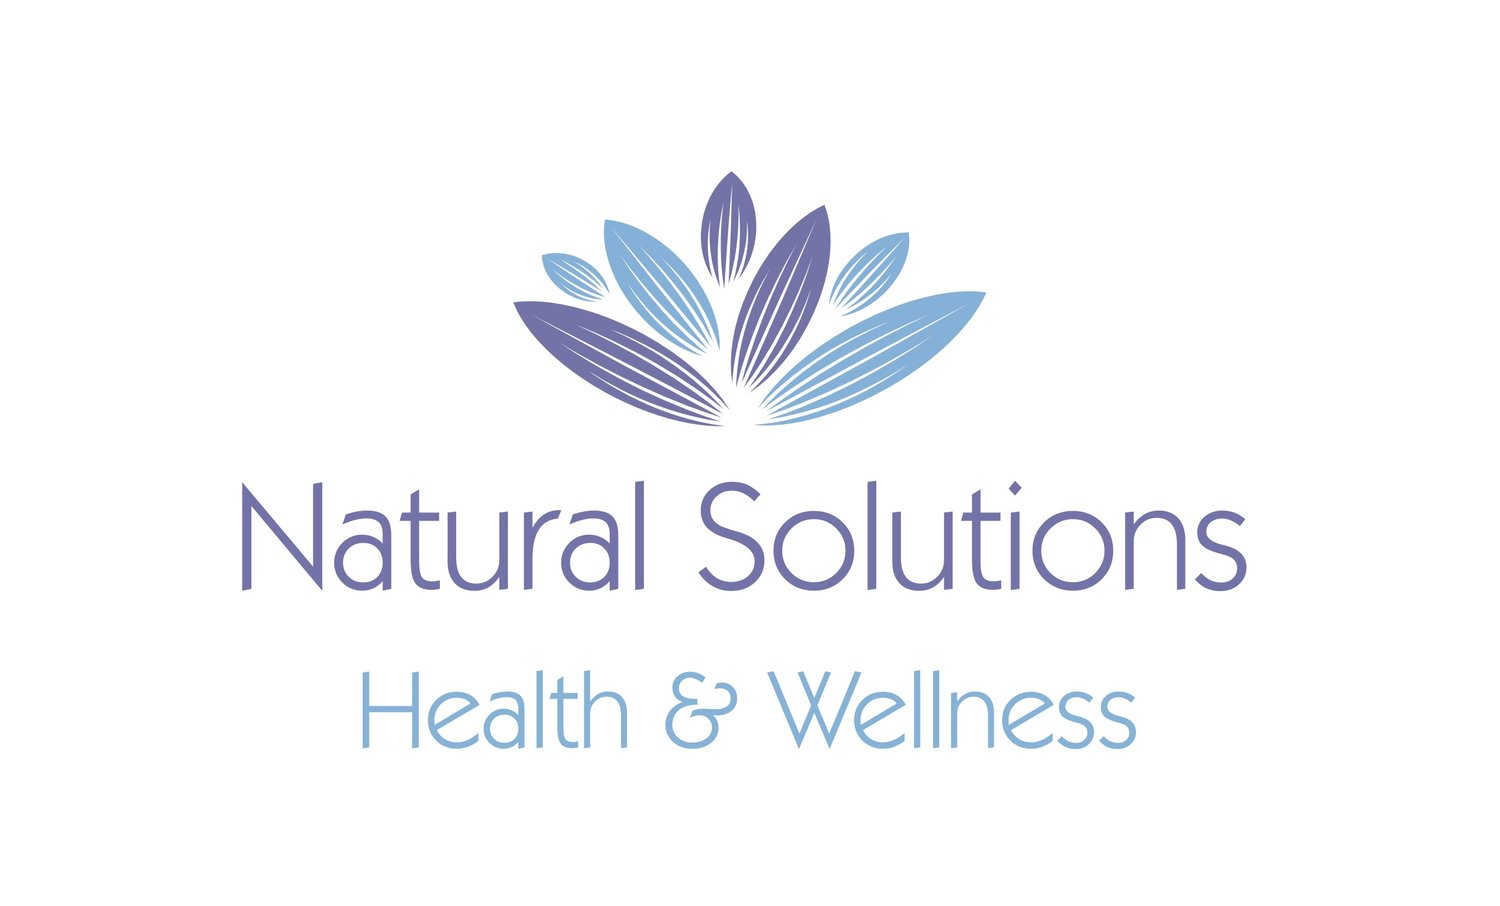 Natural Solutions Health & Wellness logo